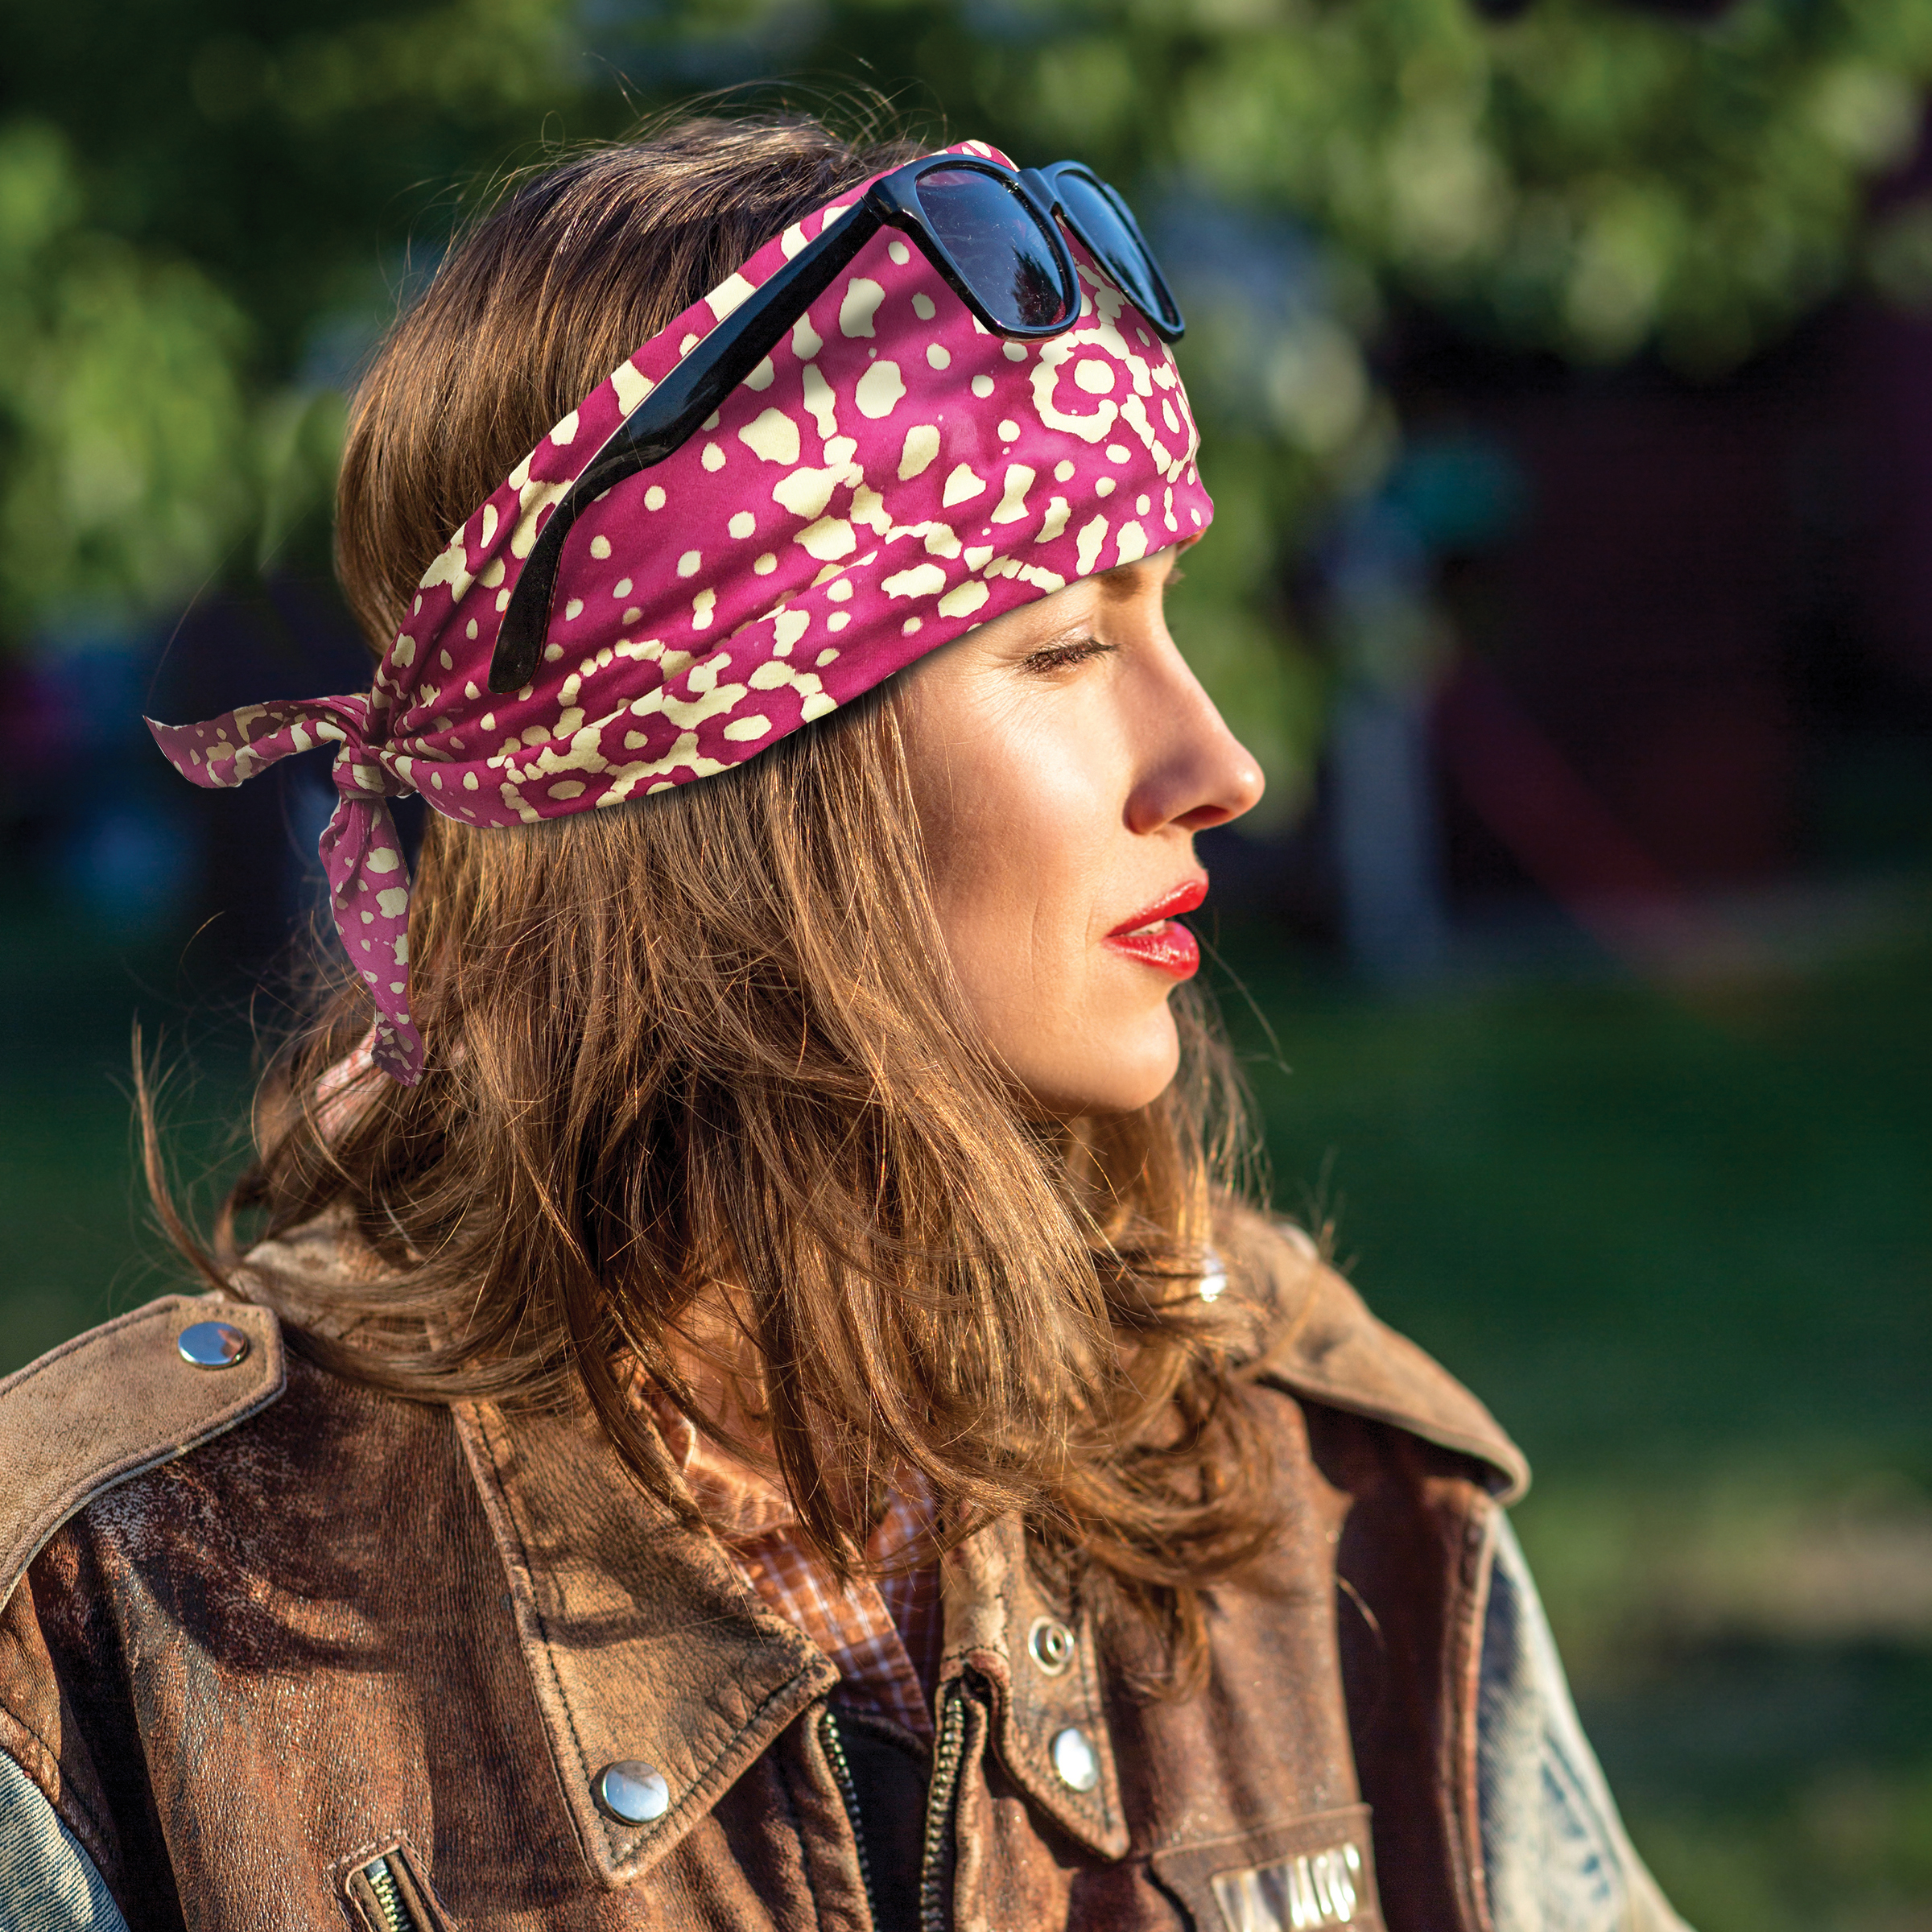 Girl with Batik Headband & leather jacket bandanna bandana